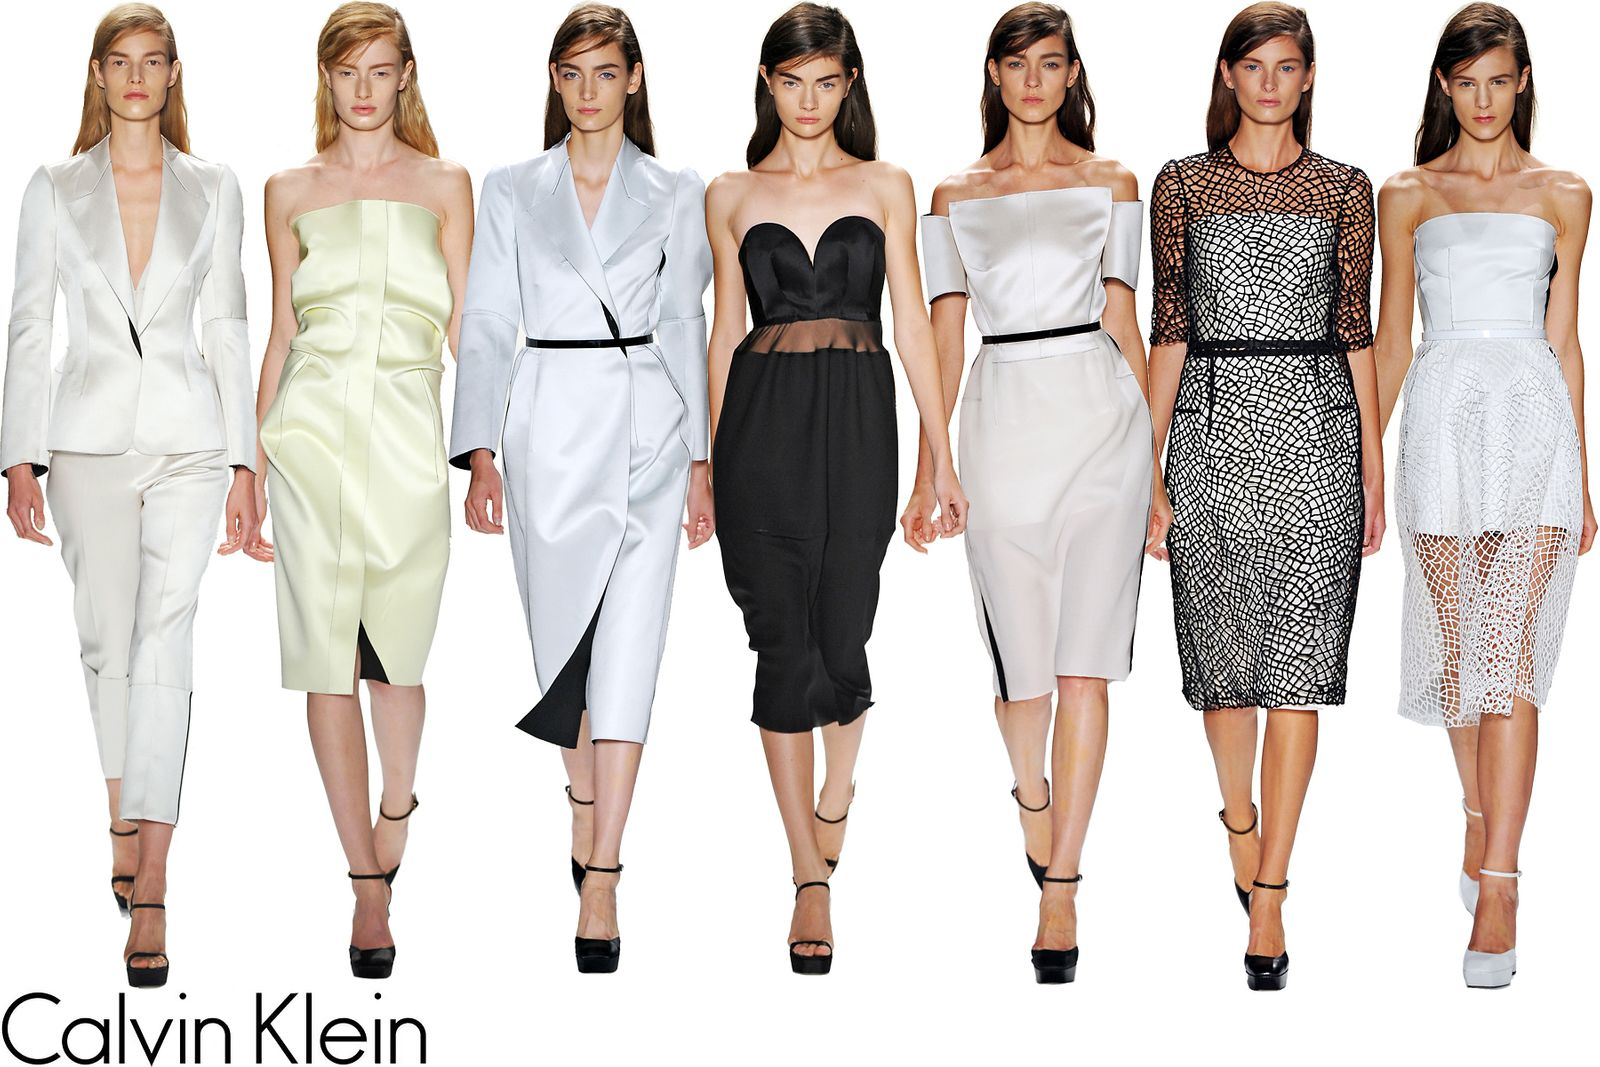 Calvin Klein Spring/Summer 2013 Collection in New York